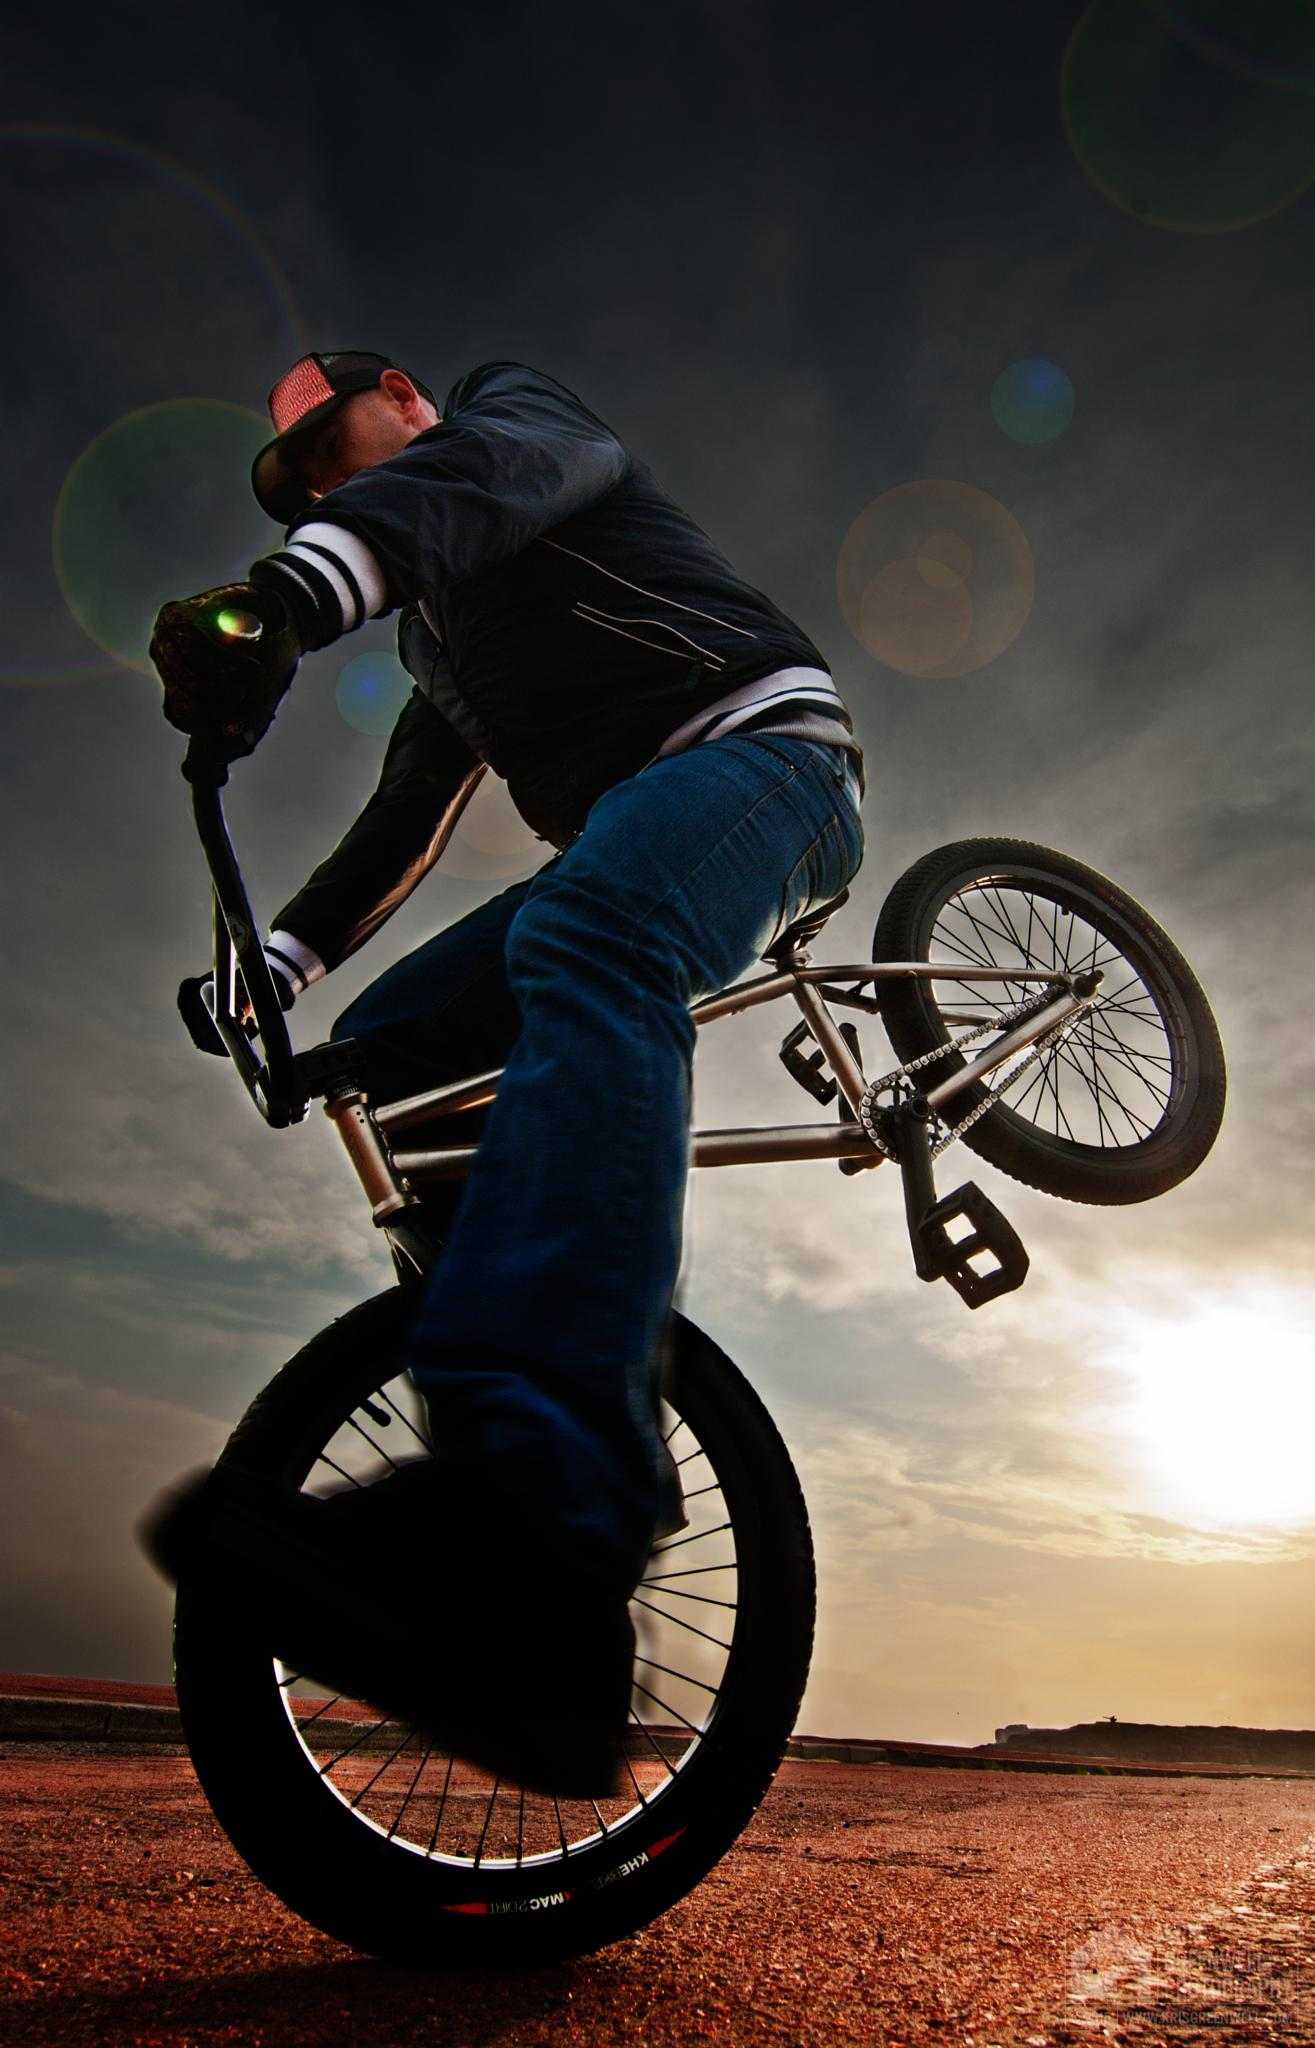 BMX nose manual by kris greenwell